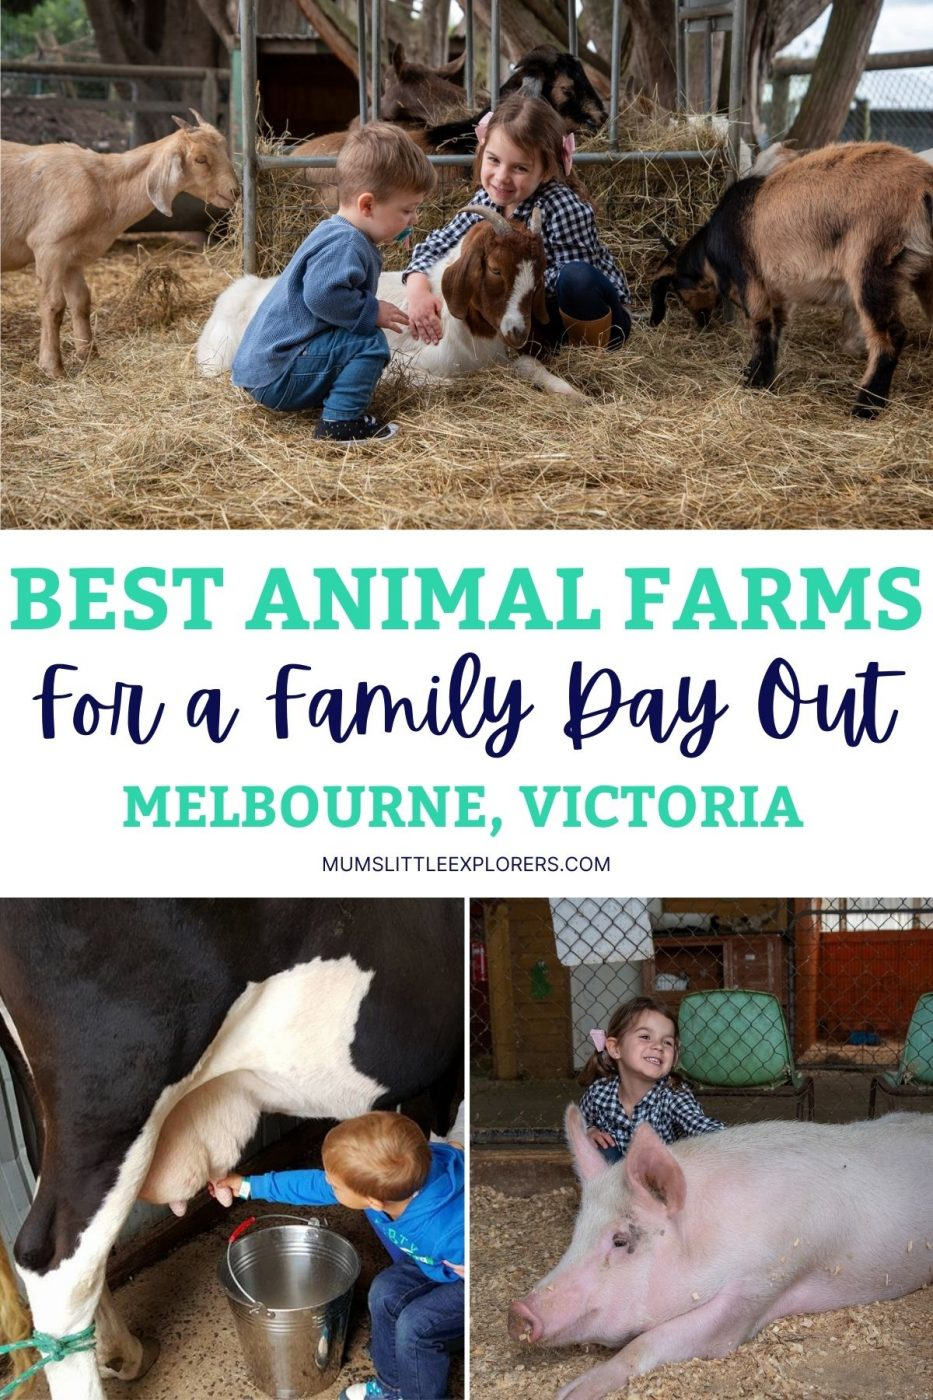 Best Animal Farms in Melbourne Victoria